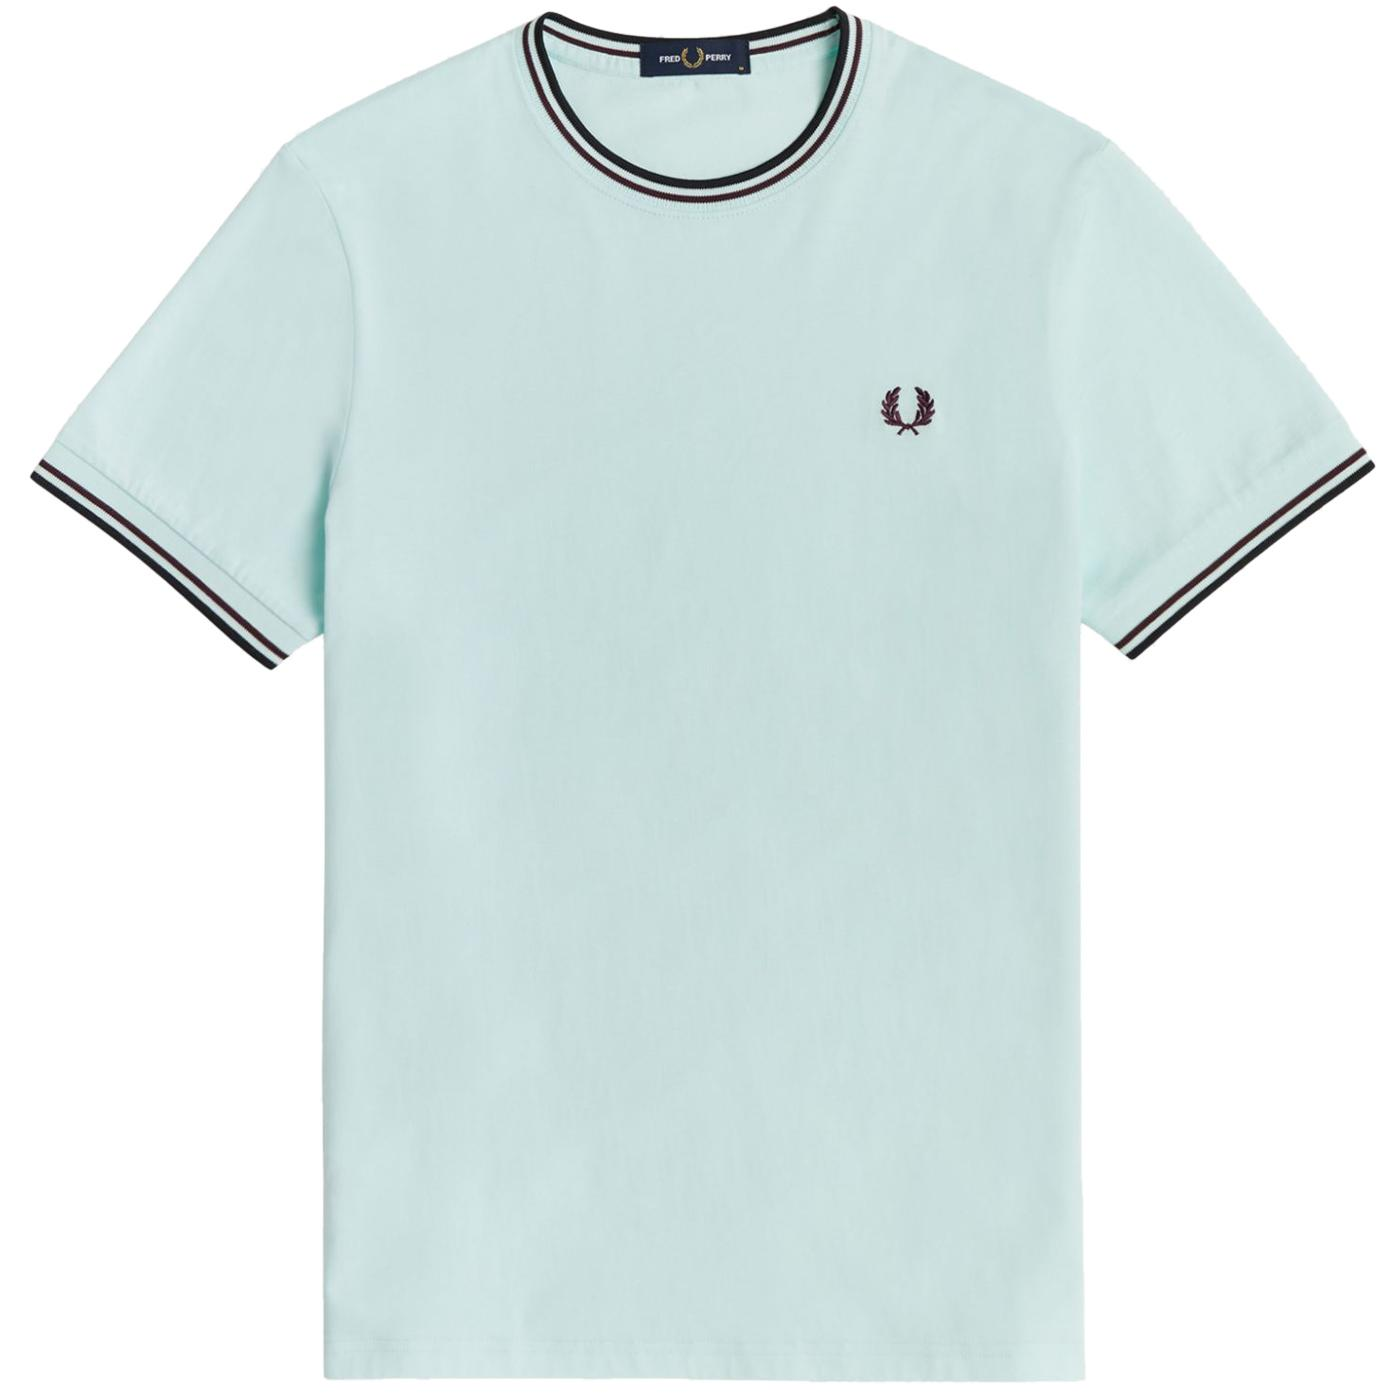 FRED PERRY M1588 Twin Tipped Tee (Brighton Blue)